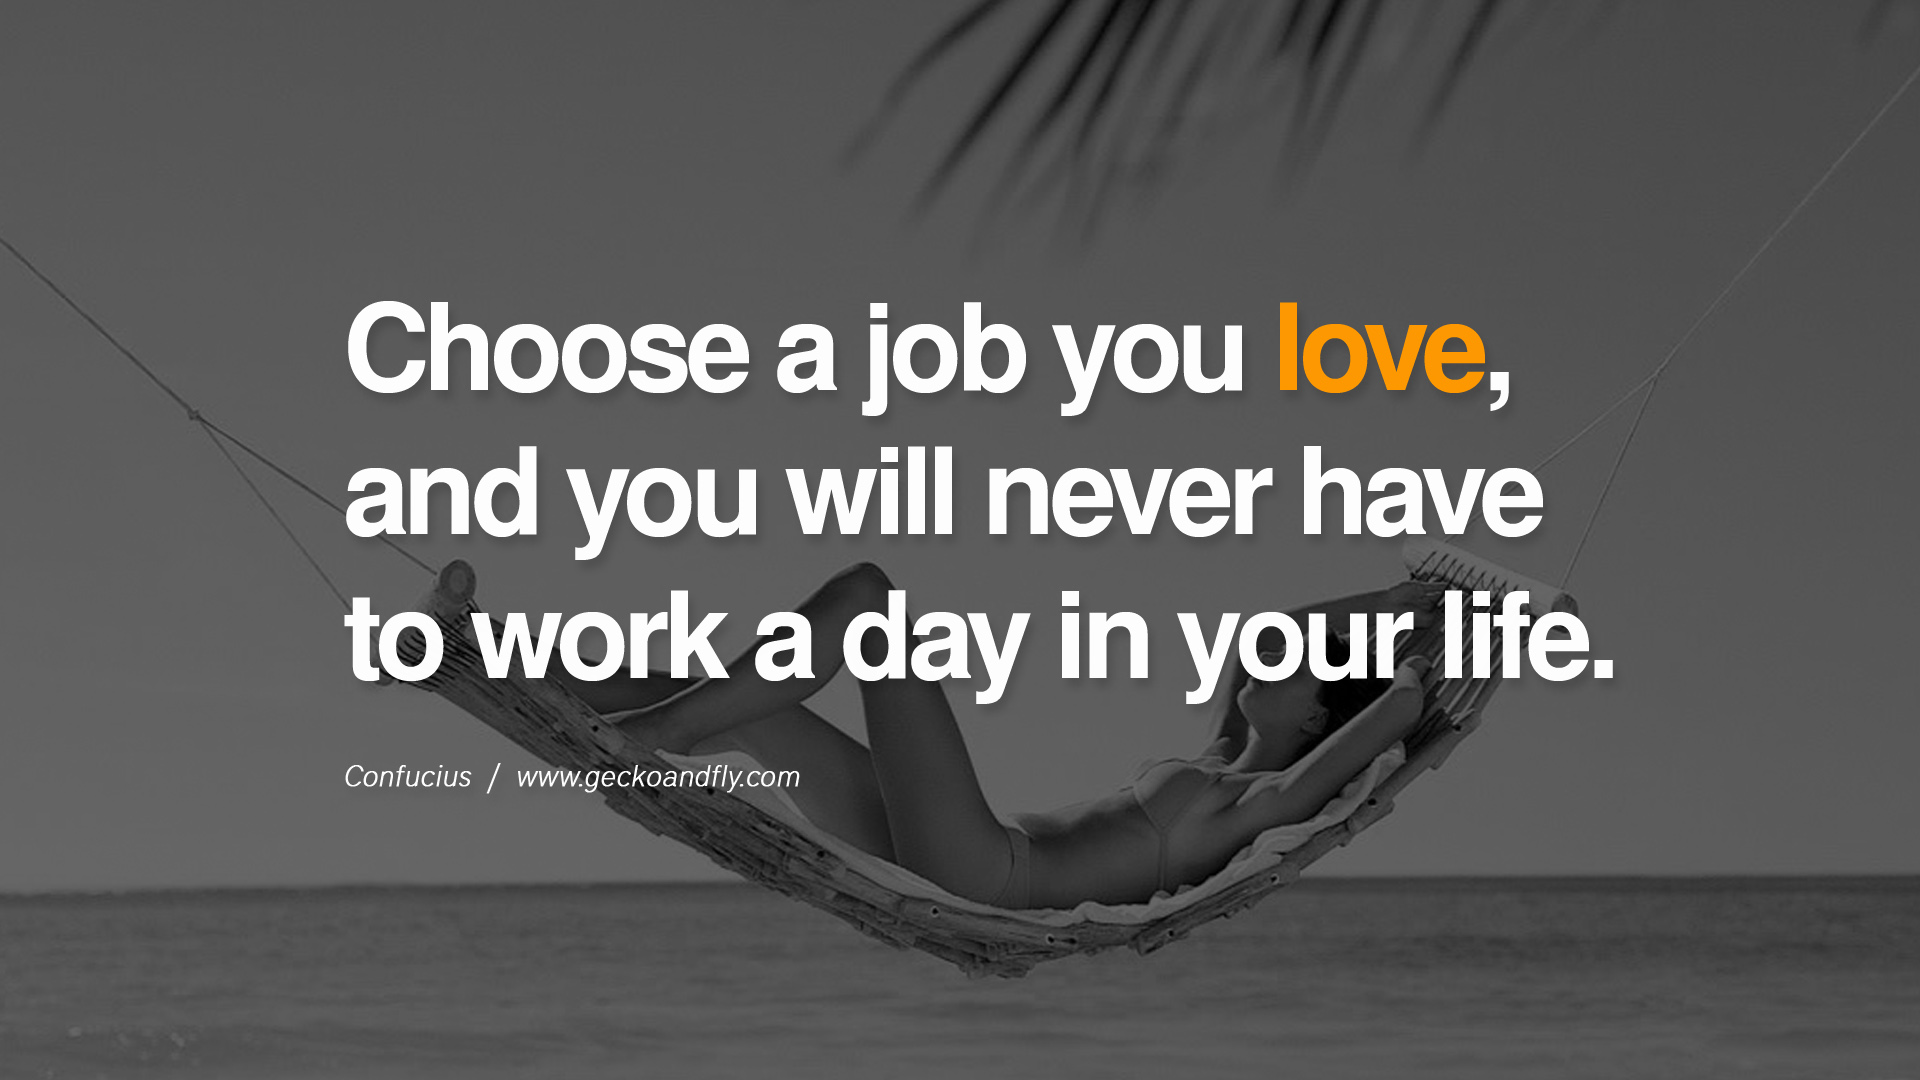 confucius-choose a job you love and you will never have to work a day in your life